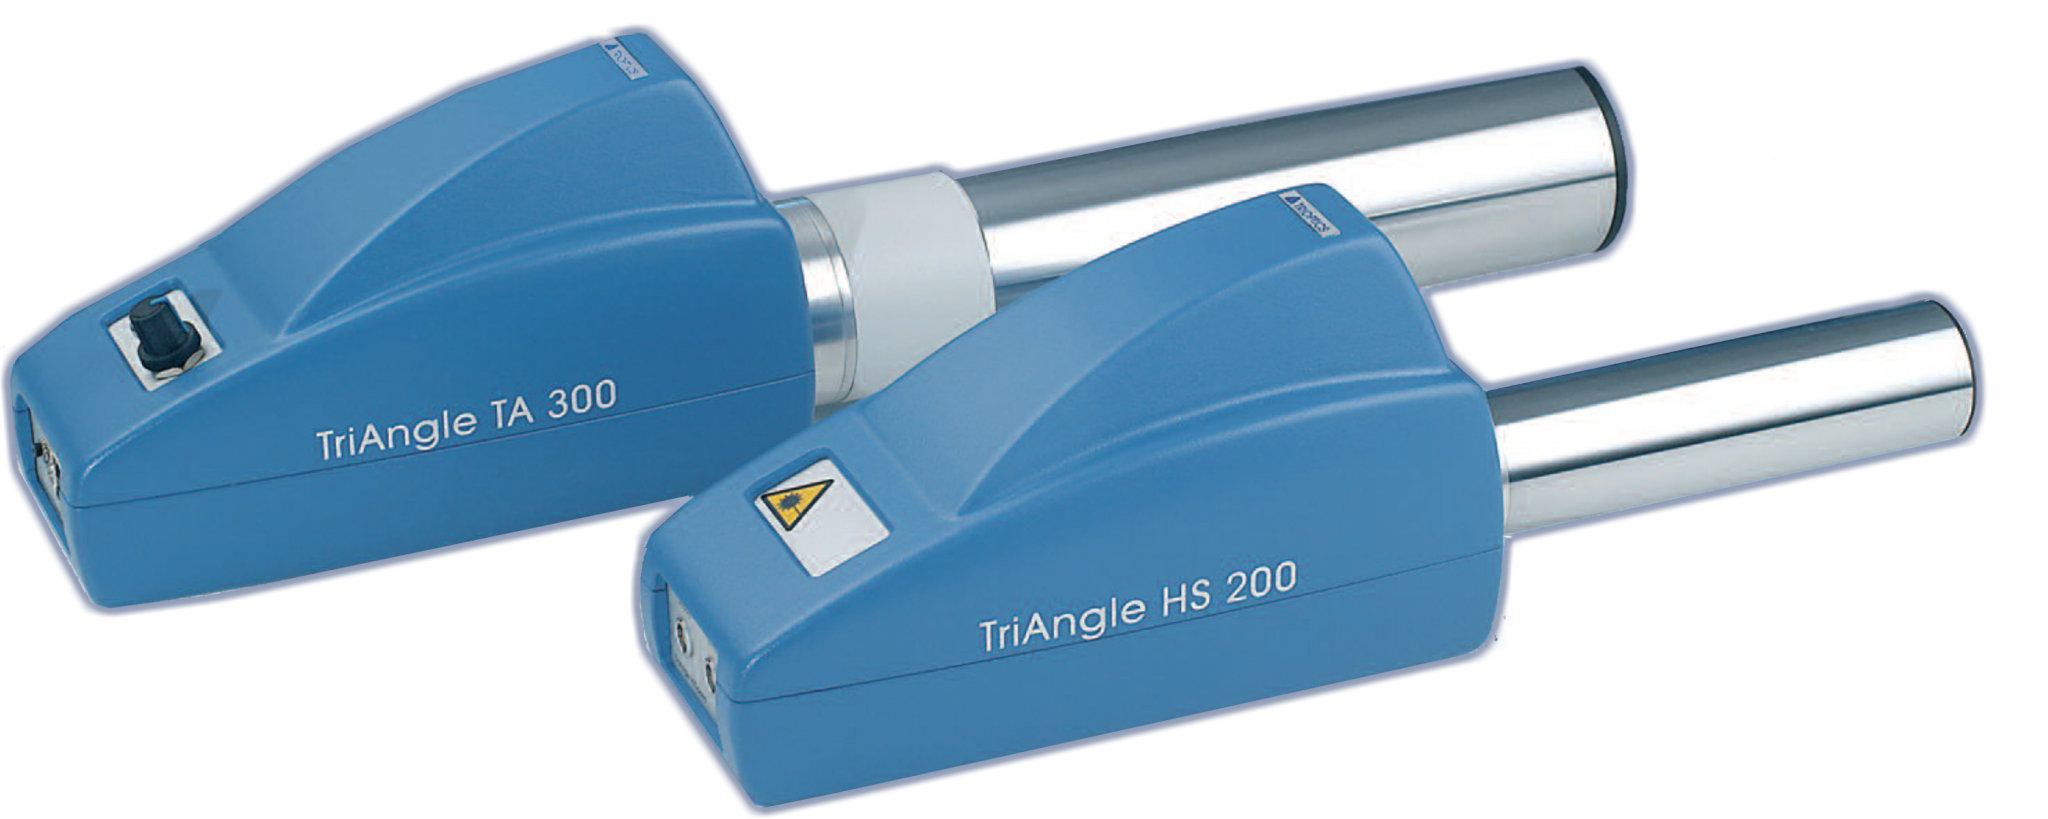 Trioptics TriAngle TA 300 200